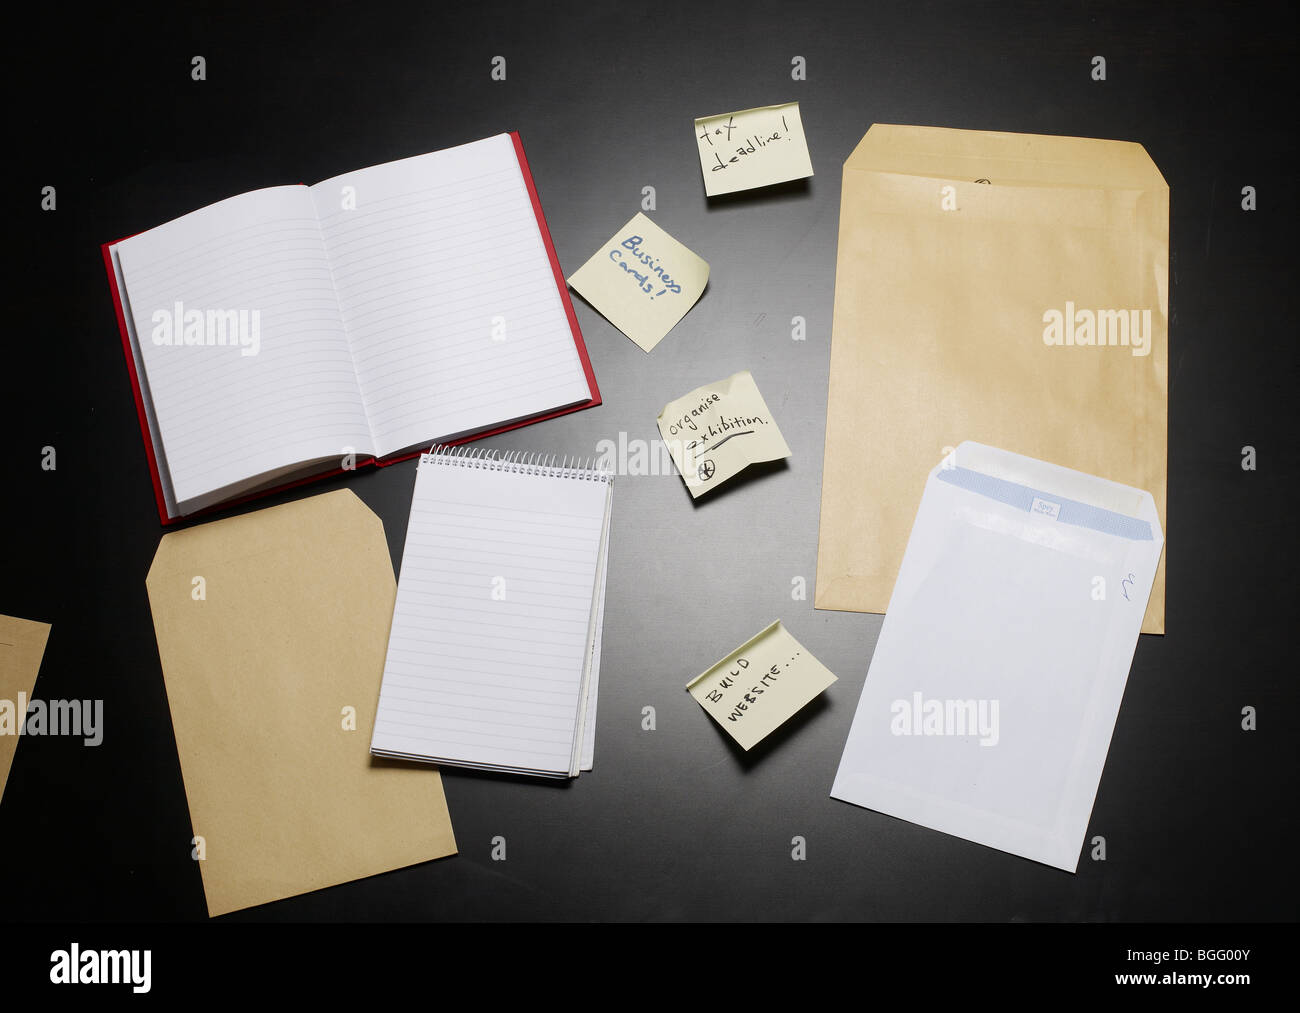 post it notes and stationary - Stock Image